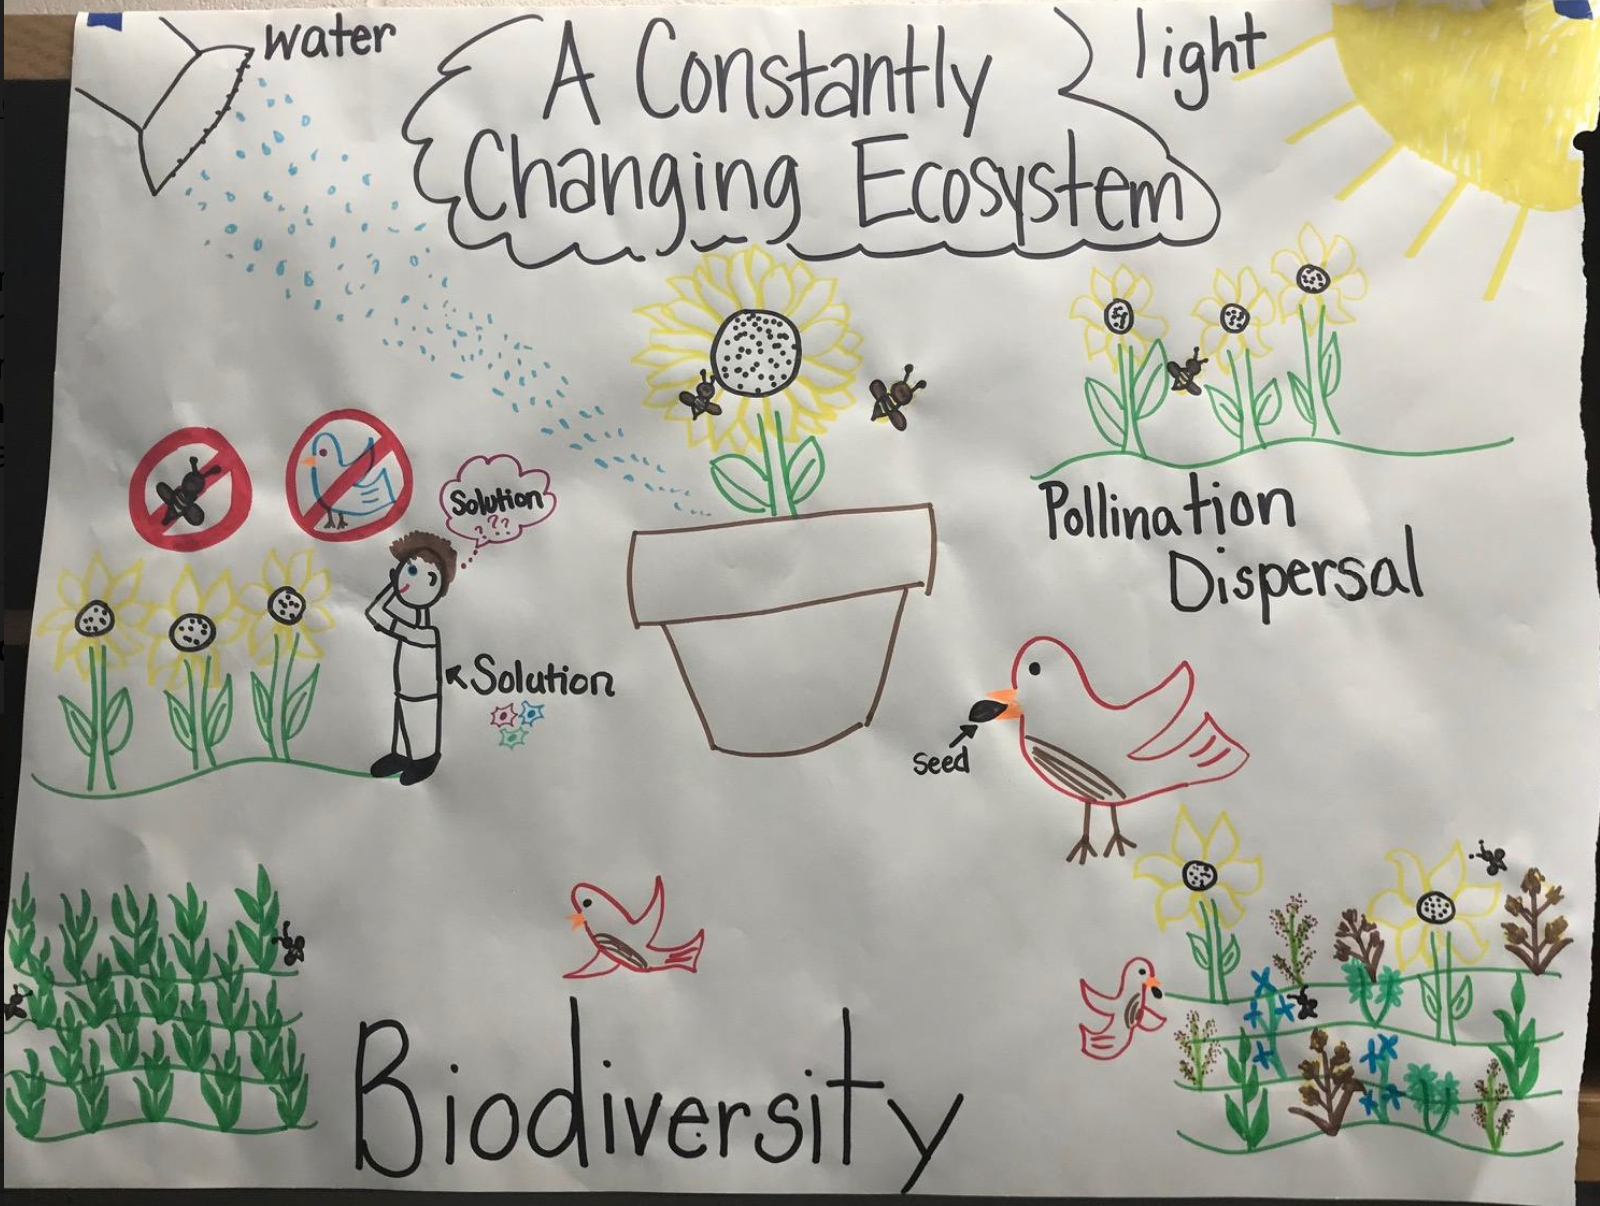 2_-_Biodiversity_and_Ecocystems.png